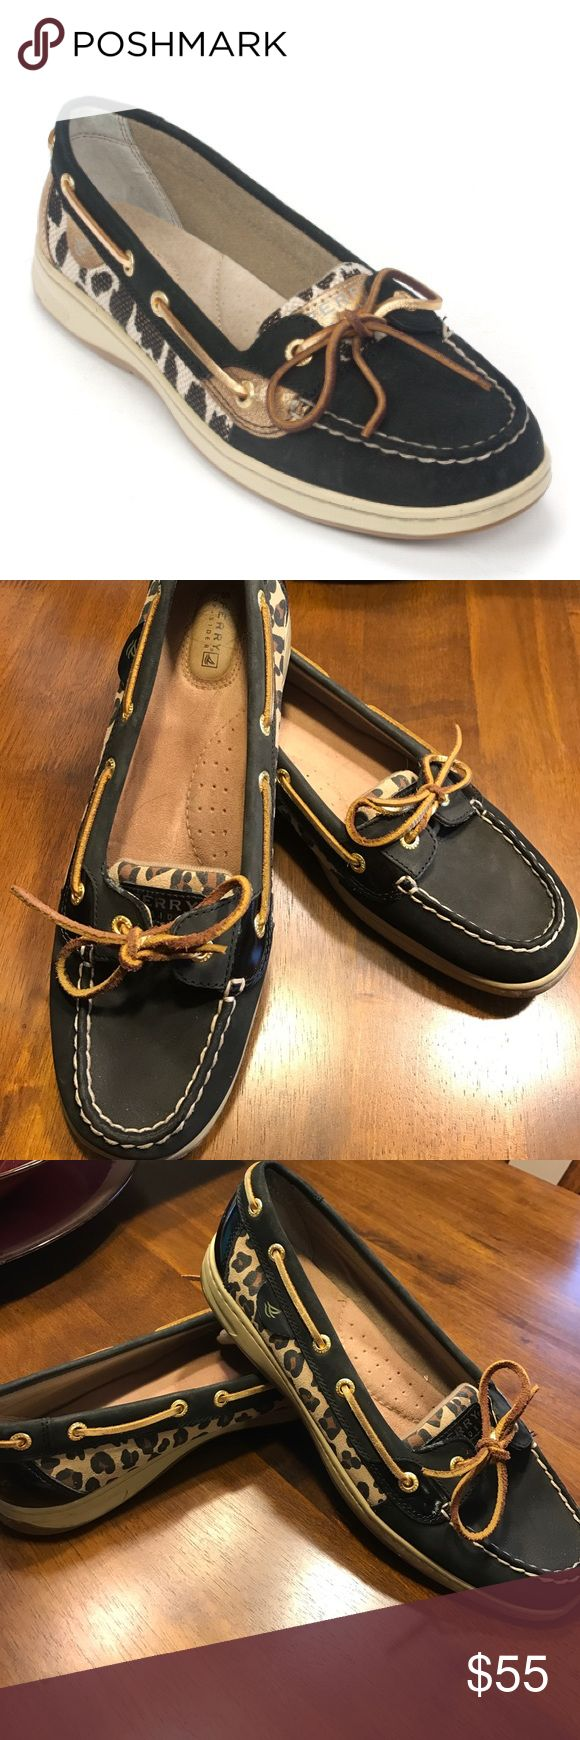 Cheetah Print Sperry Top-siders Pair of Sperrys! They're in pristine condition and have only been worn once or twice! So so cute and they pair perfectly with the cheetah cardigan I have for sale! Sperry Top-Sider Shoes Flats & Loafers